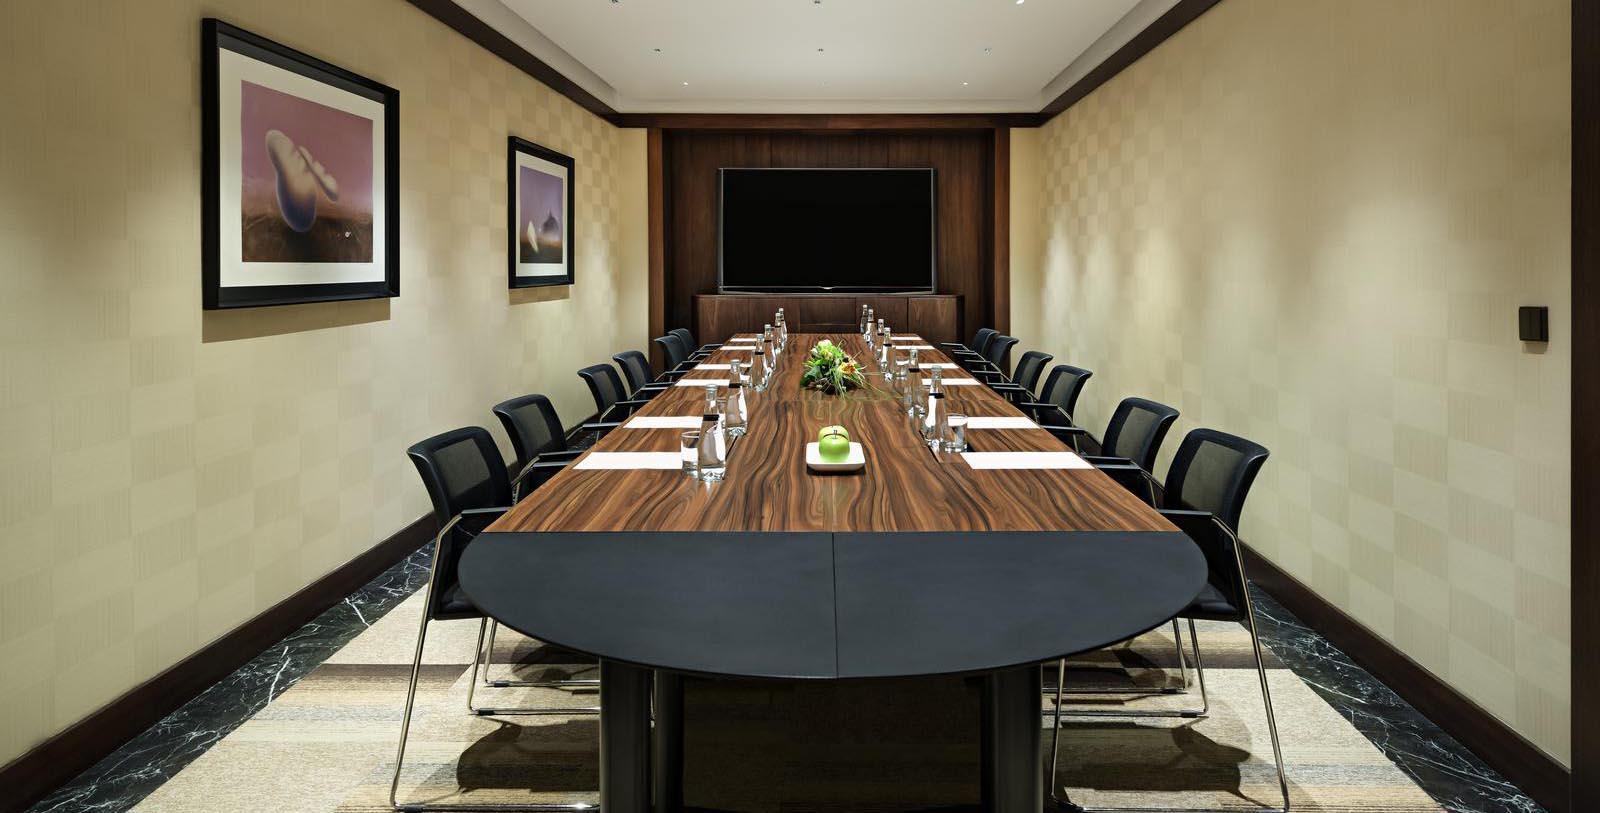 Image of Boardroom at The Galata Istanbul Hotel - MGallery by Sofitel, 1720, Member of Historic Hotels Worldwide, in Istanbul, Turkey, Experience